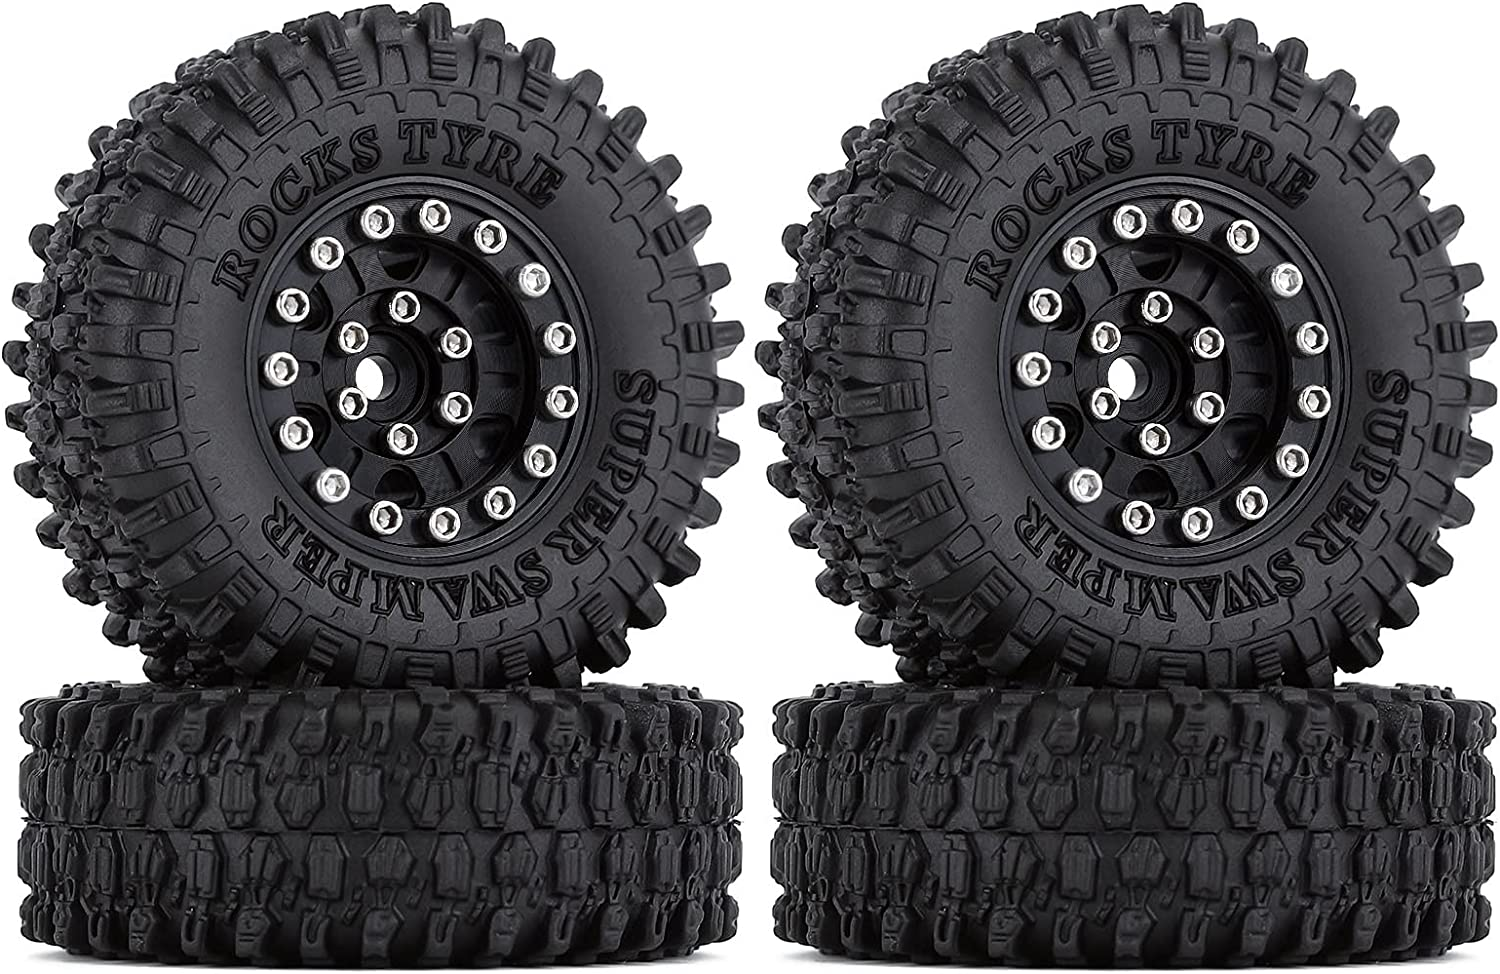 INJORA Courier shipping free shipping 1.0 Beadlock Wheels and Tires Ti 4Pcs Super special price Metal Crawler Micro